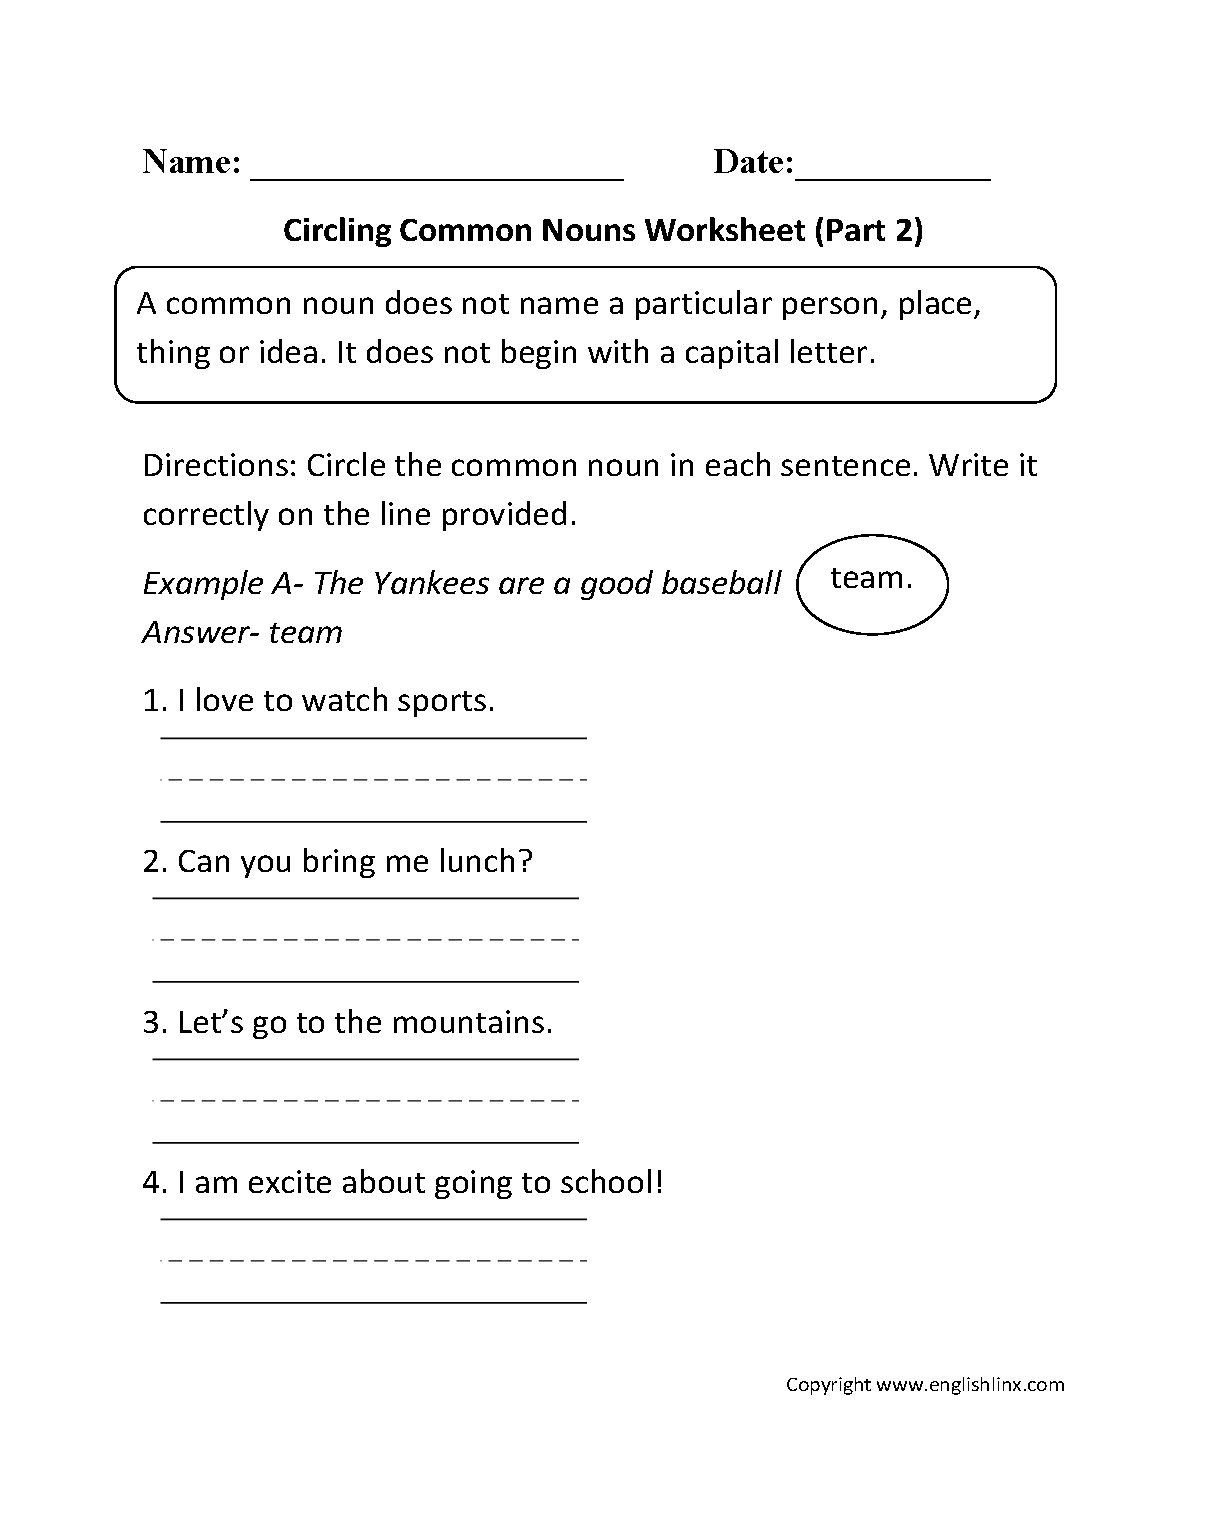 hight resolution of Proper and Common Nouns Worksheets   Circling Common Nouns Worksheet Part 2